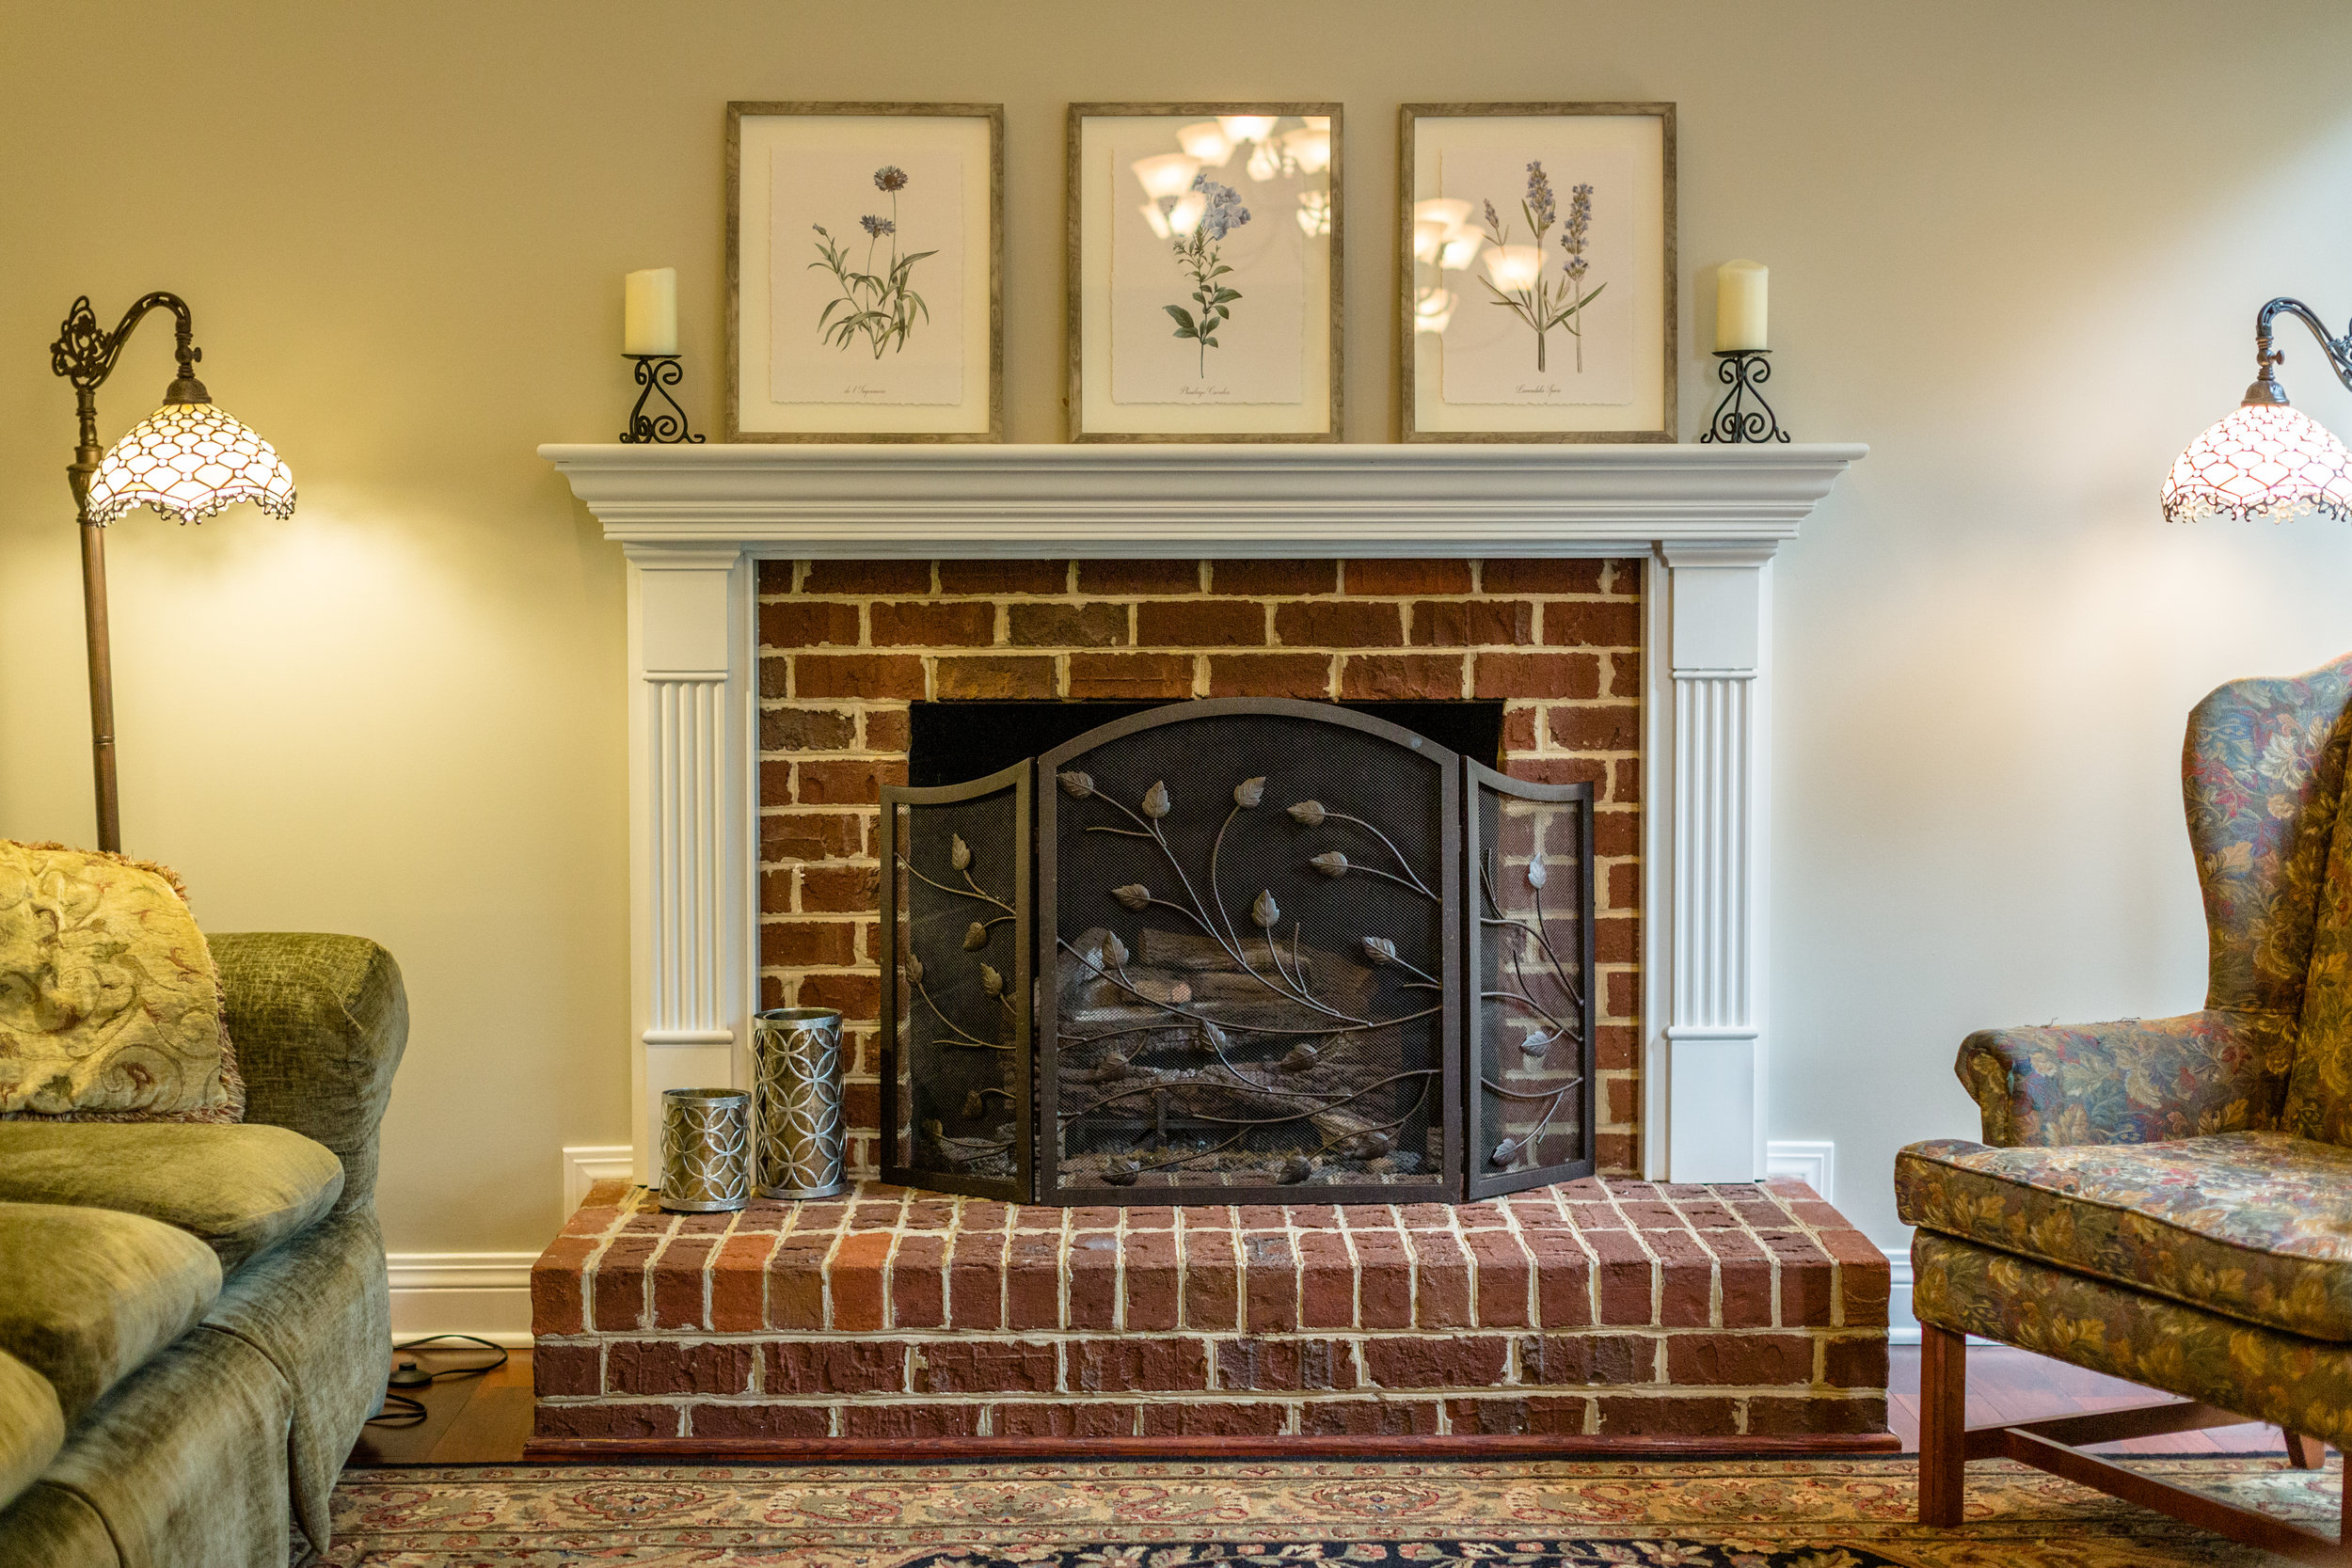 photo gallery - Scroll through the gallery of images to view more details of this stunning home